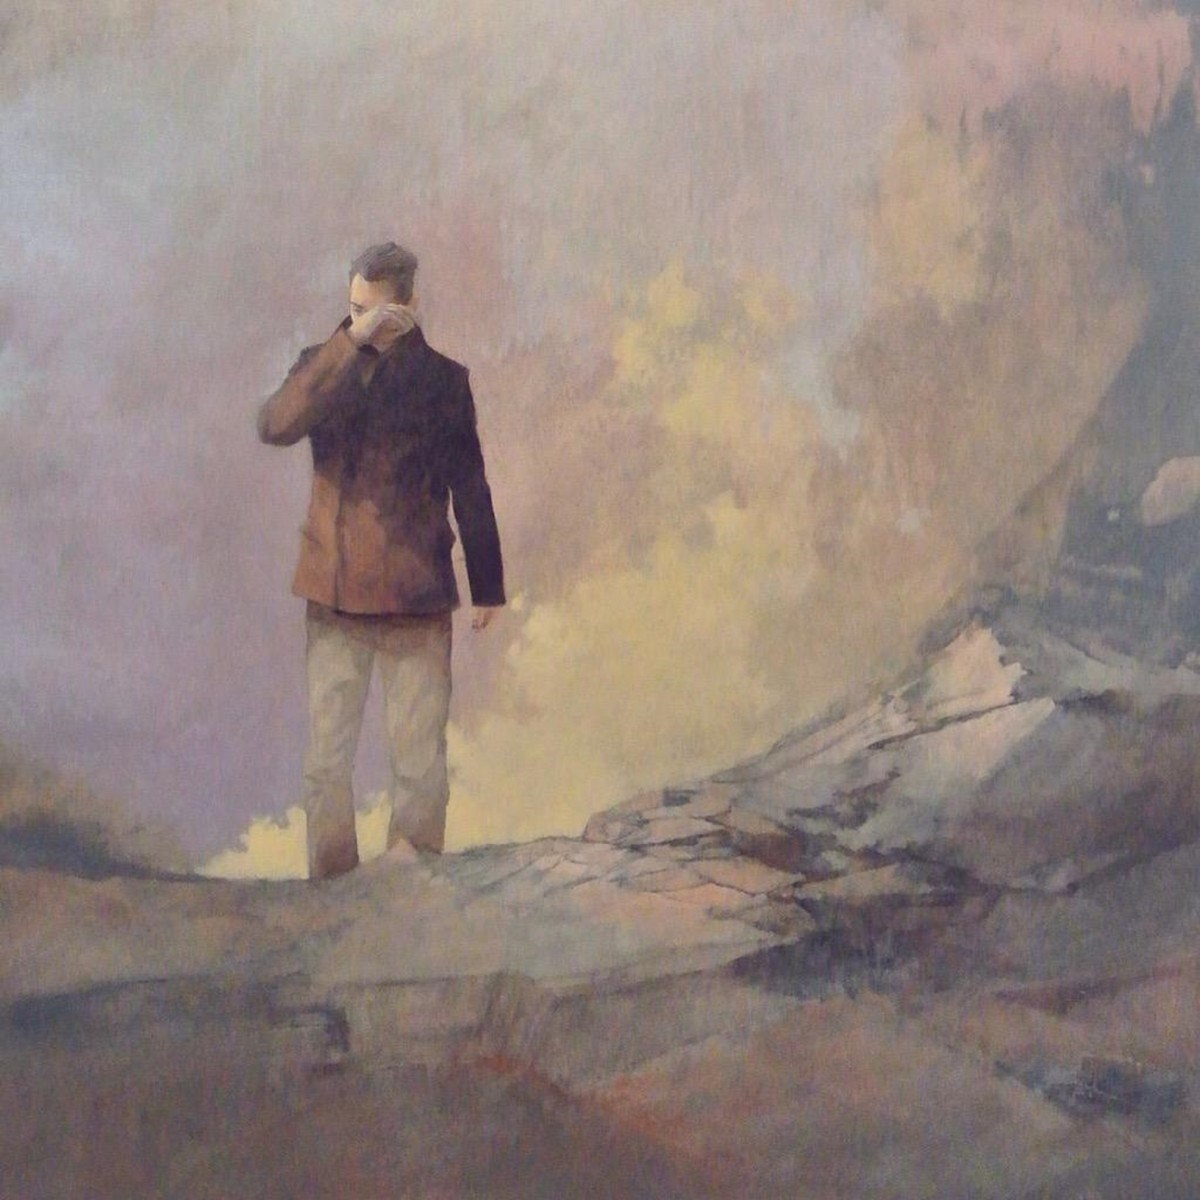 Federico Infante - The Last Poet (Acrylic on Canvas - 121 x 76 cm - 2015)